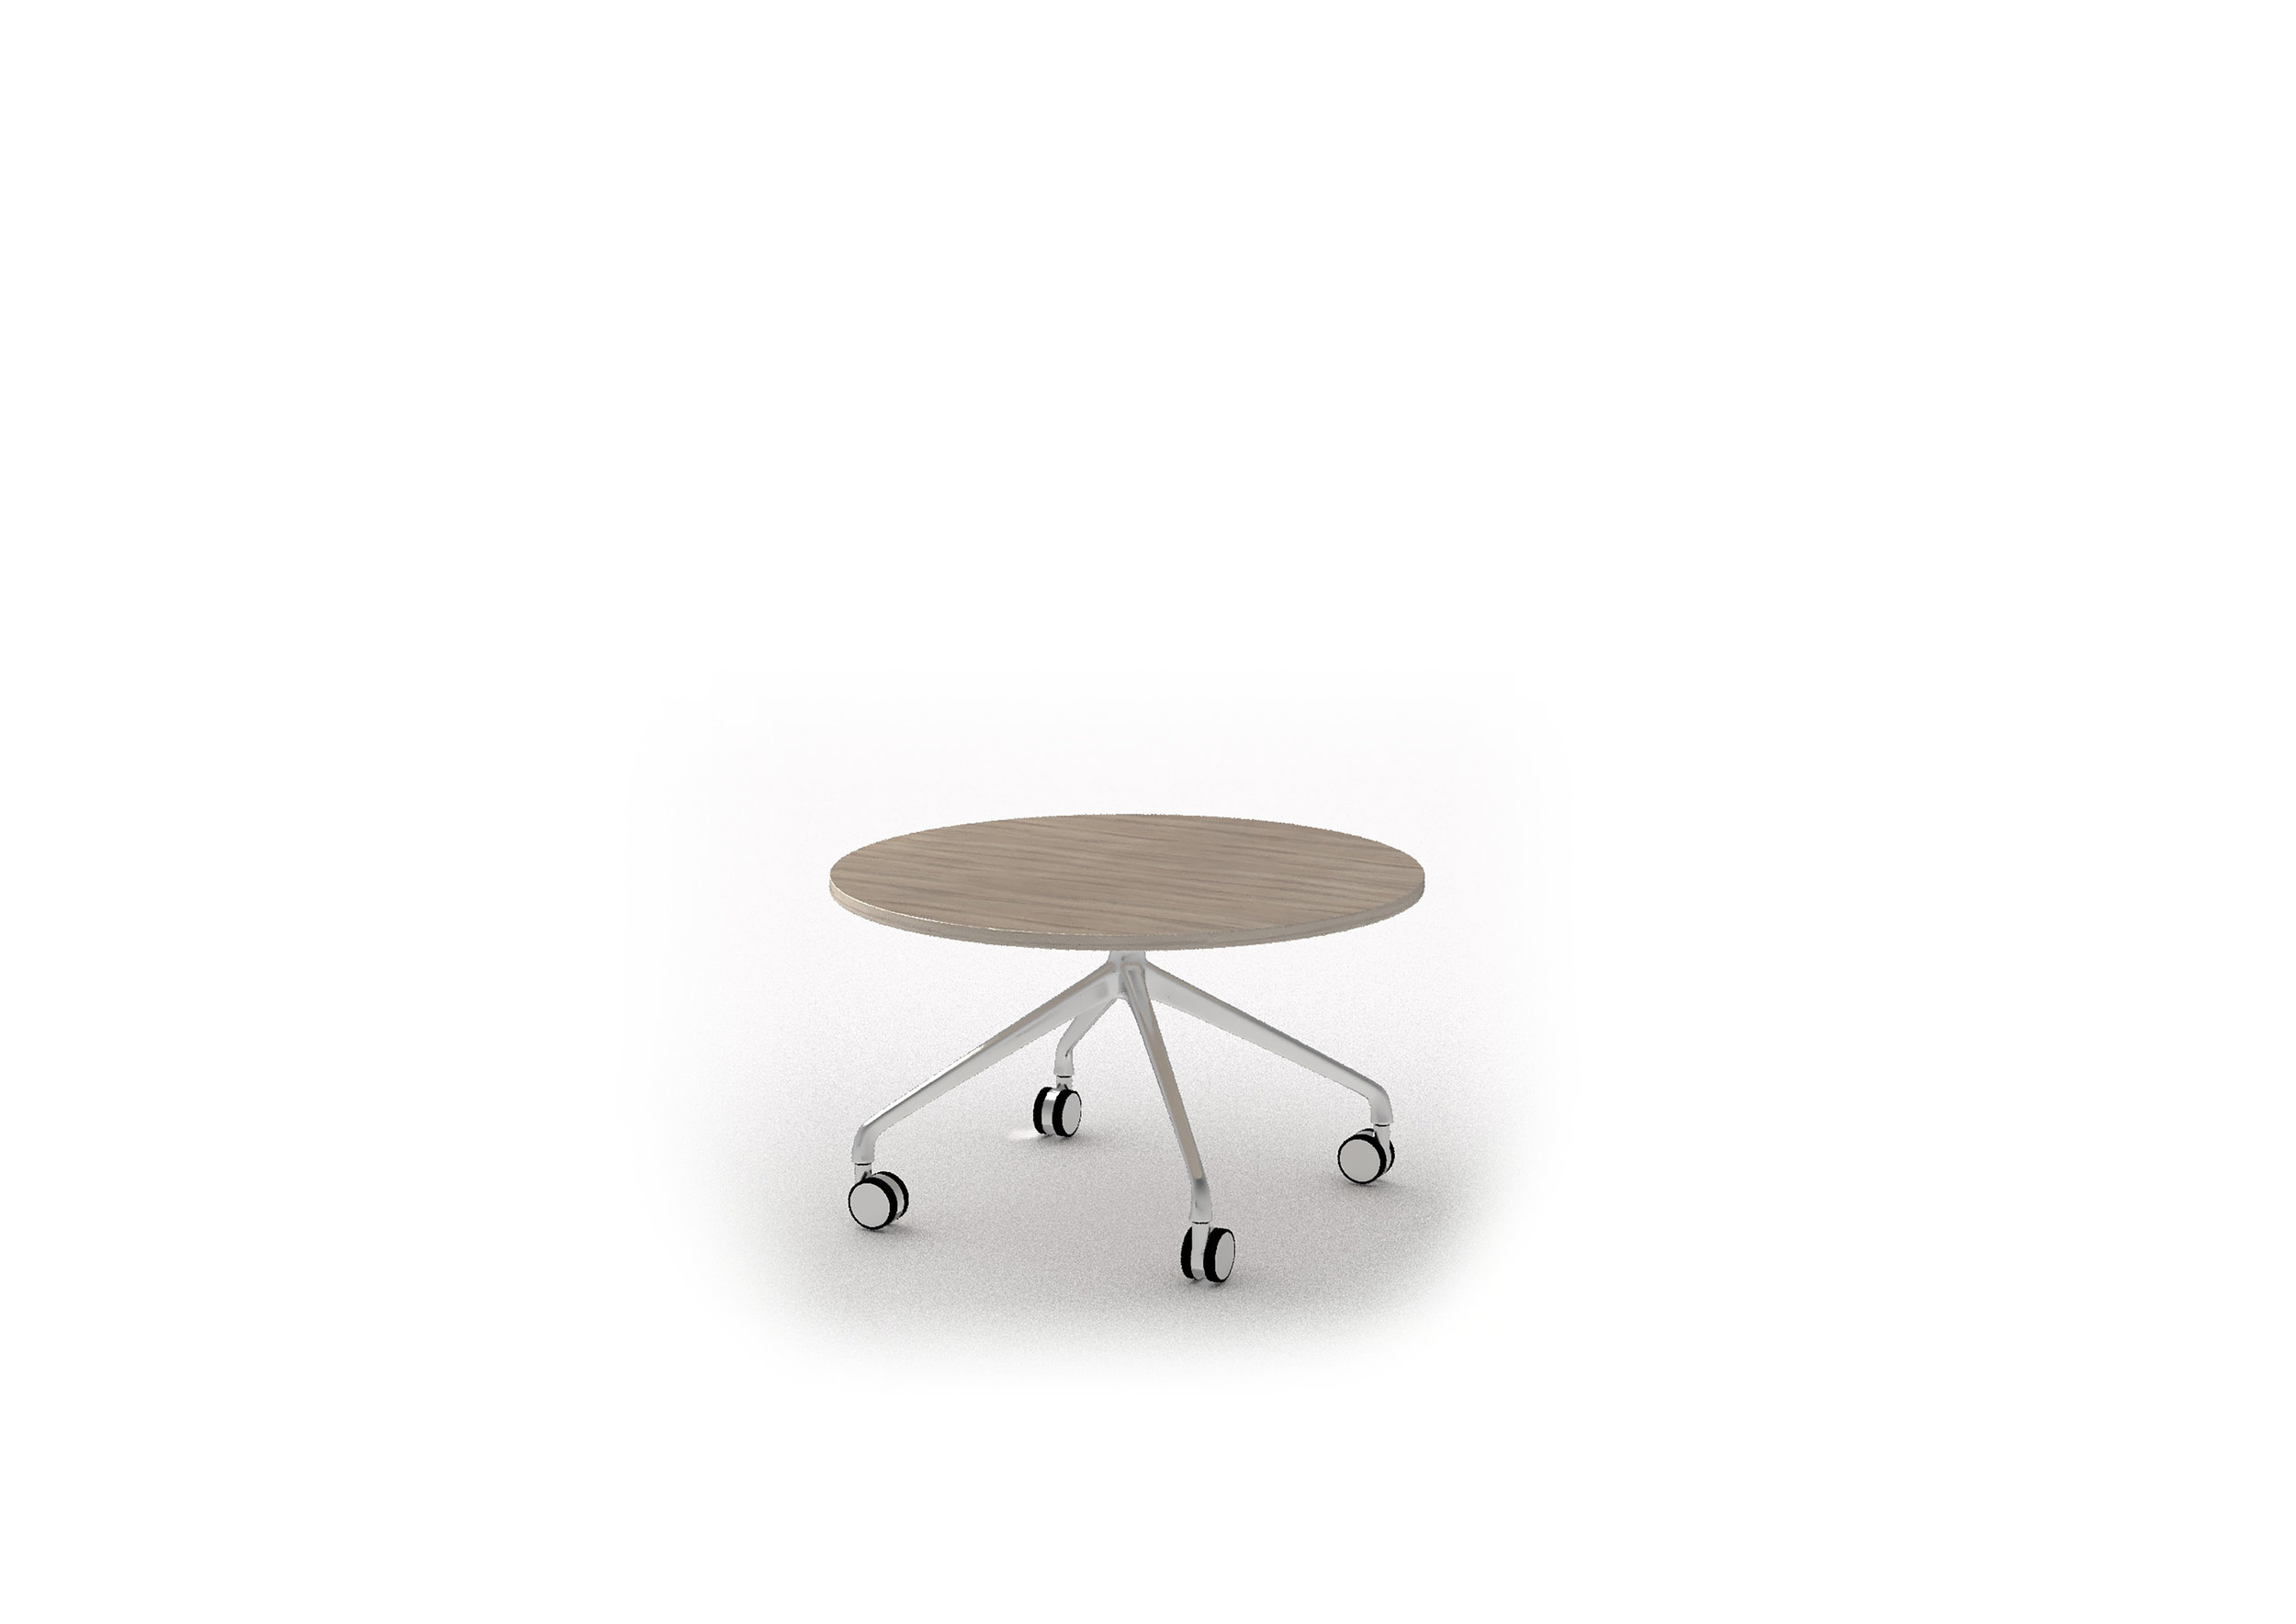 side_table_round_casters_ST-RCA-070-0-0.jpg